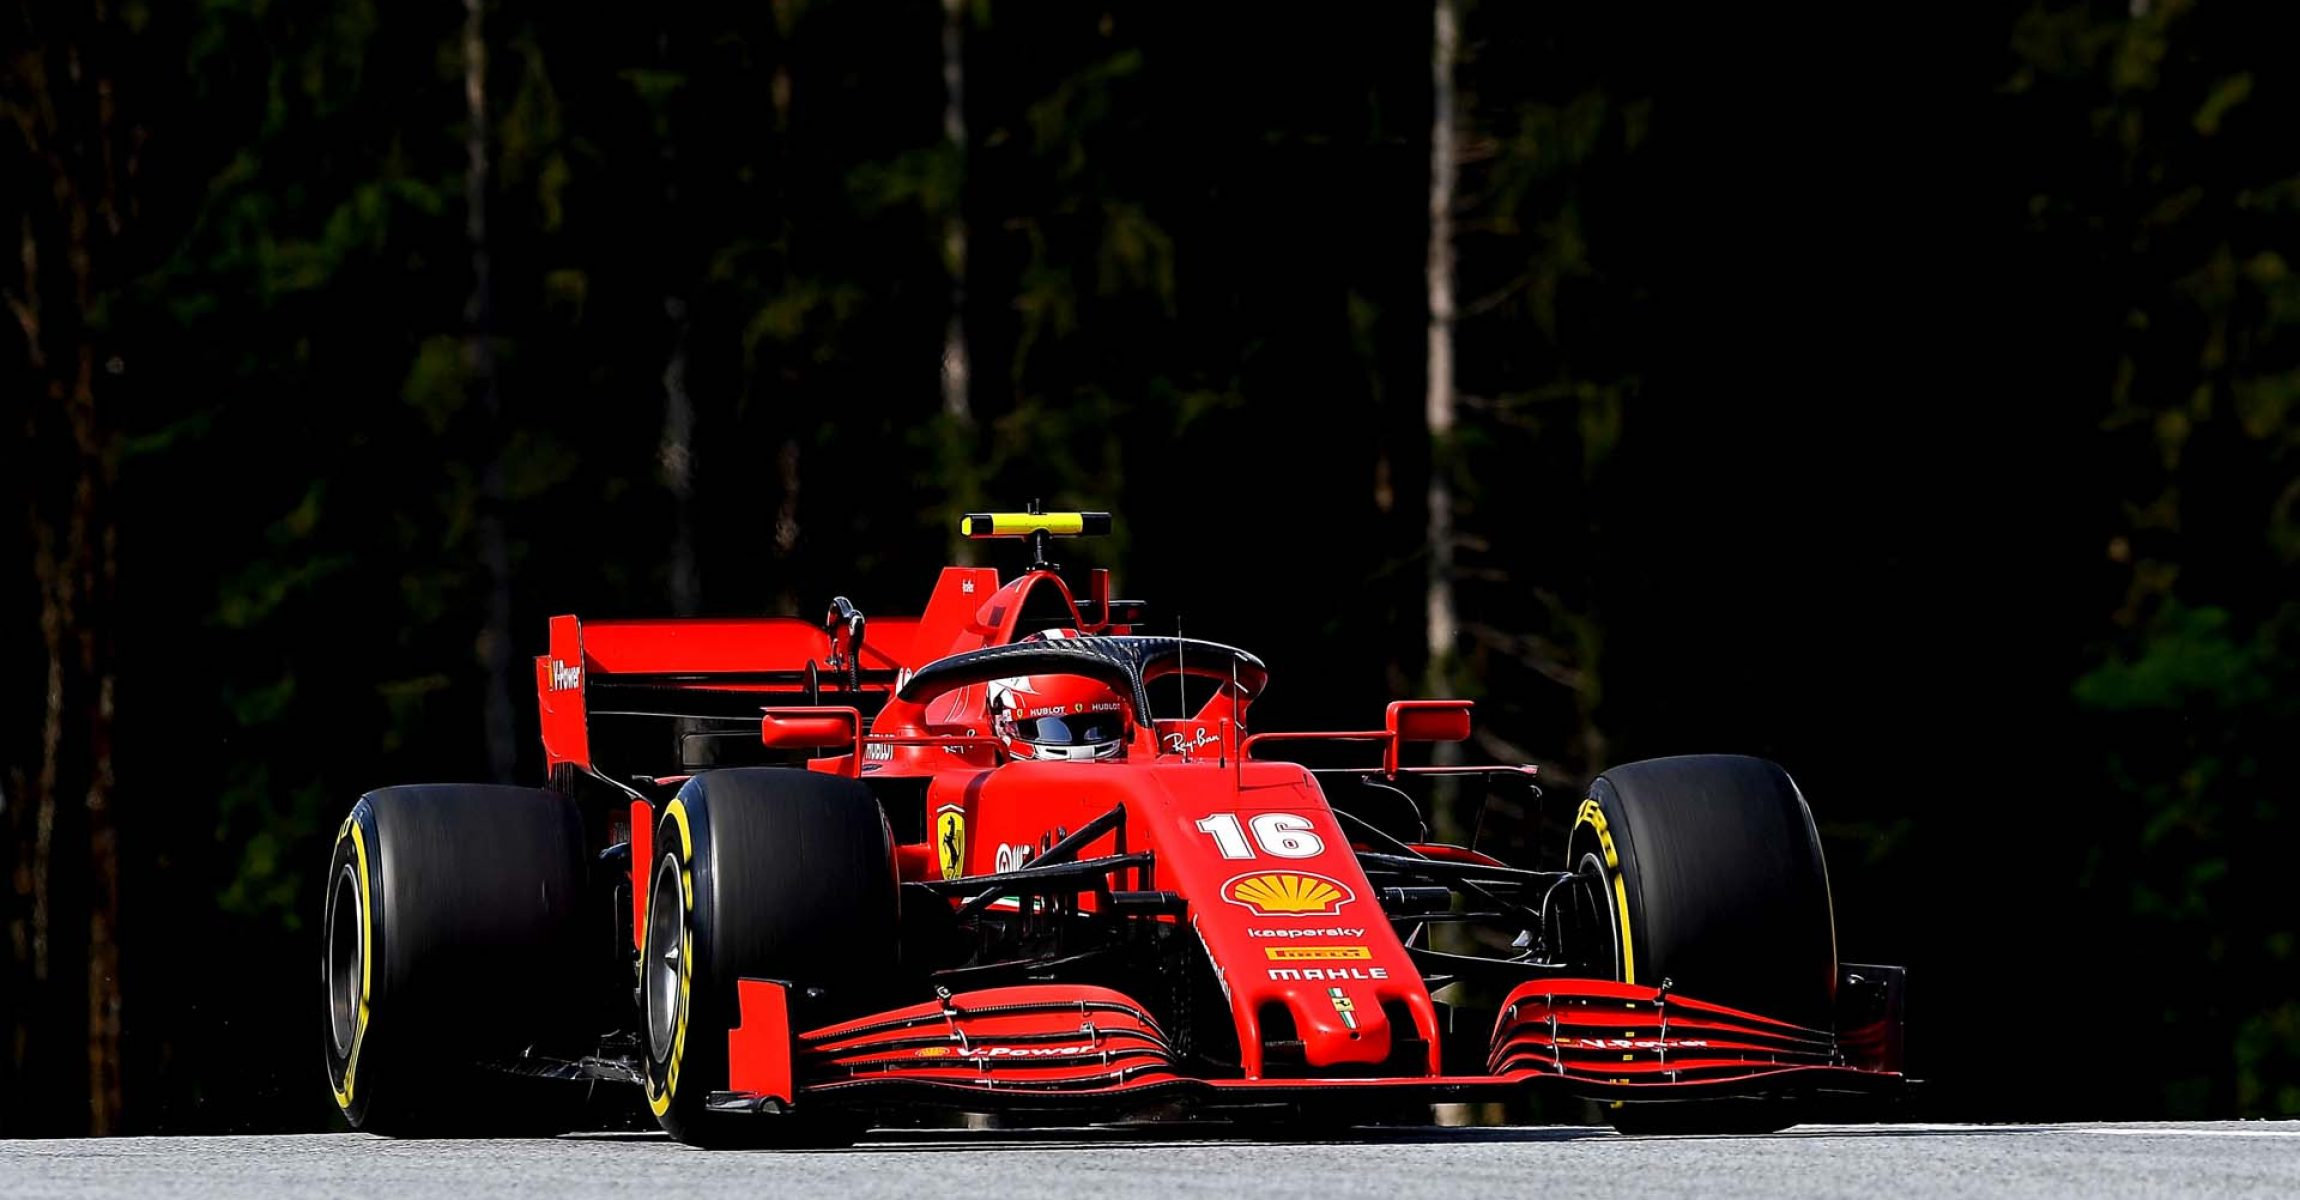 GP STYRIA F1/2020 - VENERDÌ 10/07/2020 credit: @Scuderia Ferrari Press Office Charles Leclerc